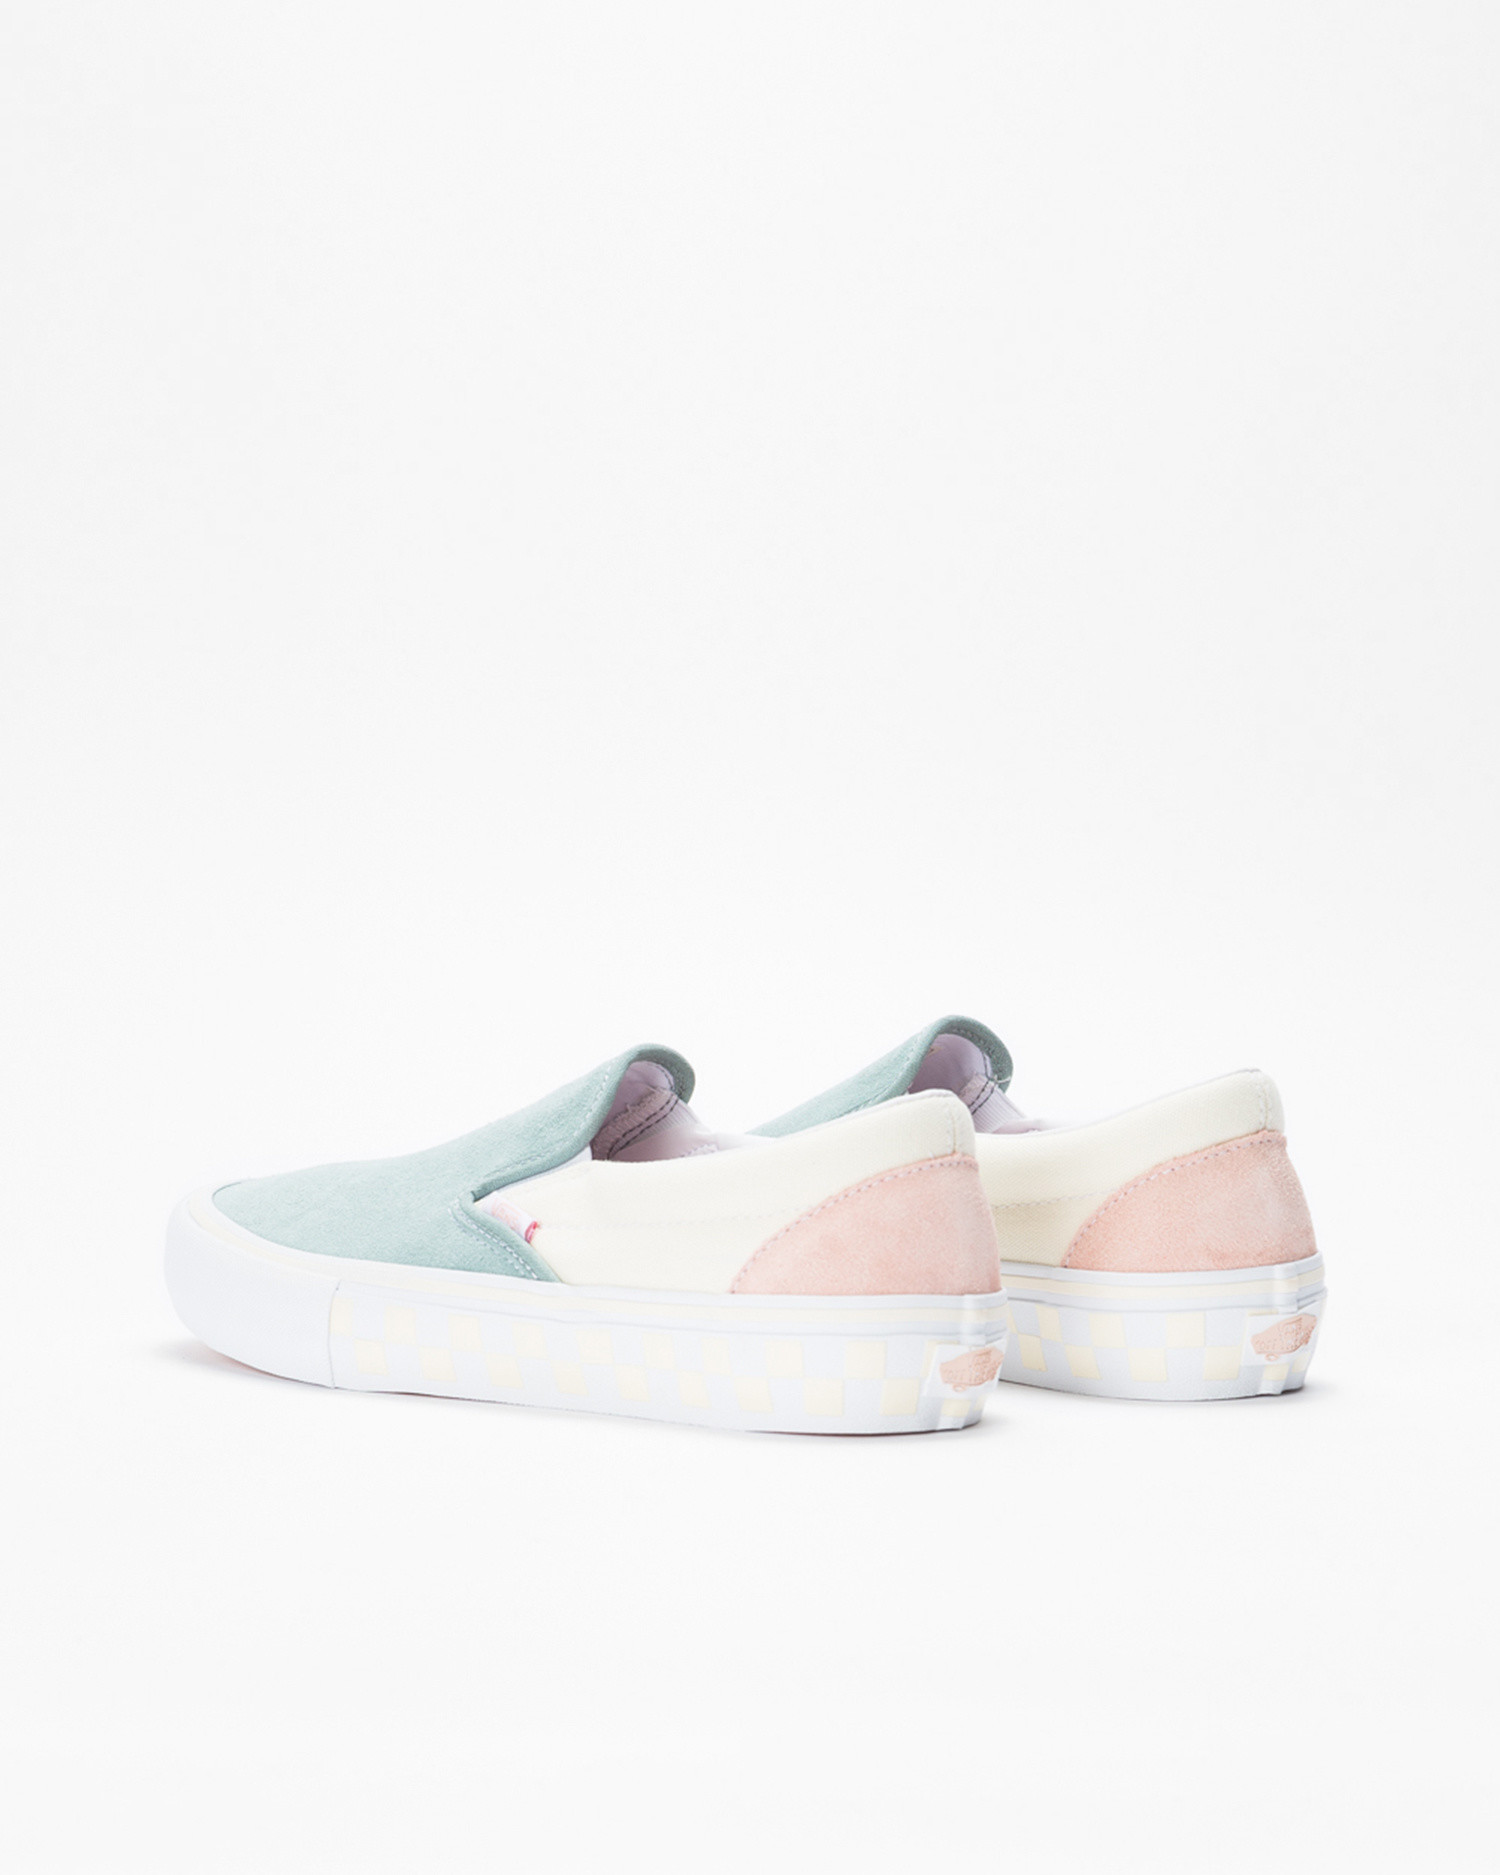 Vans Slip-On Pro Washout Blue